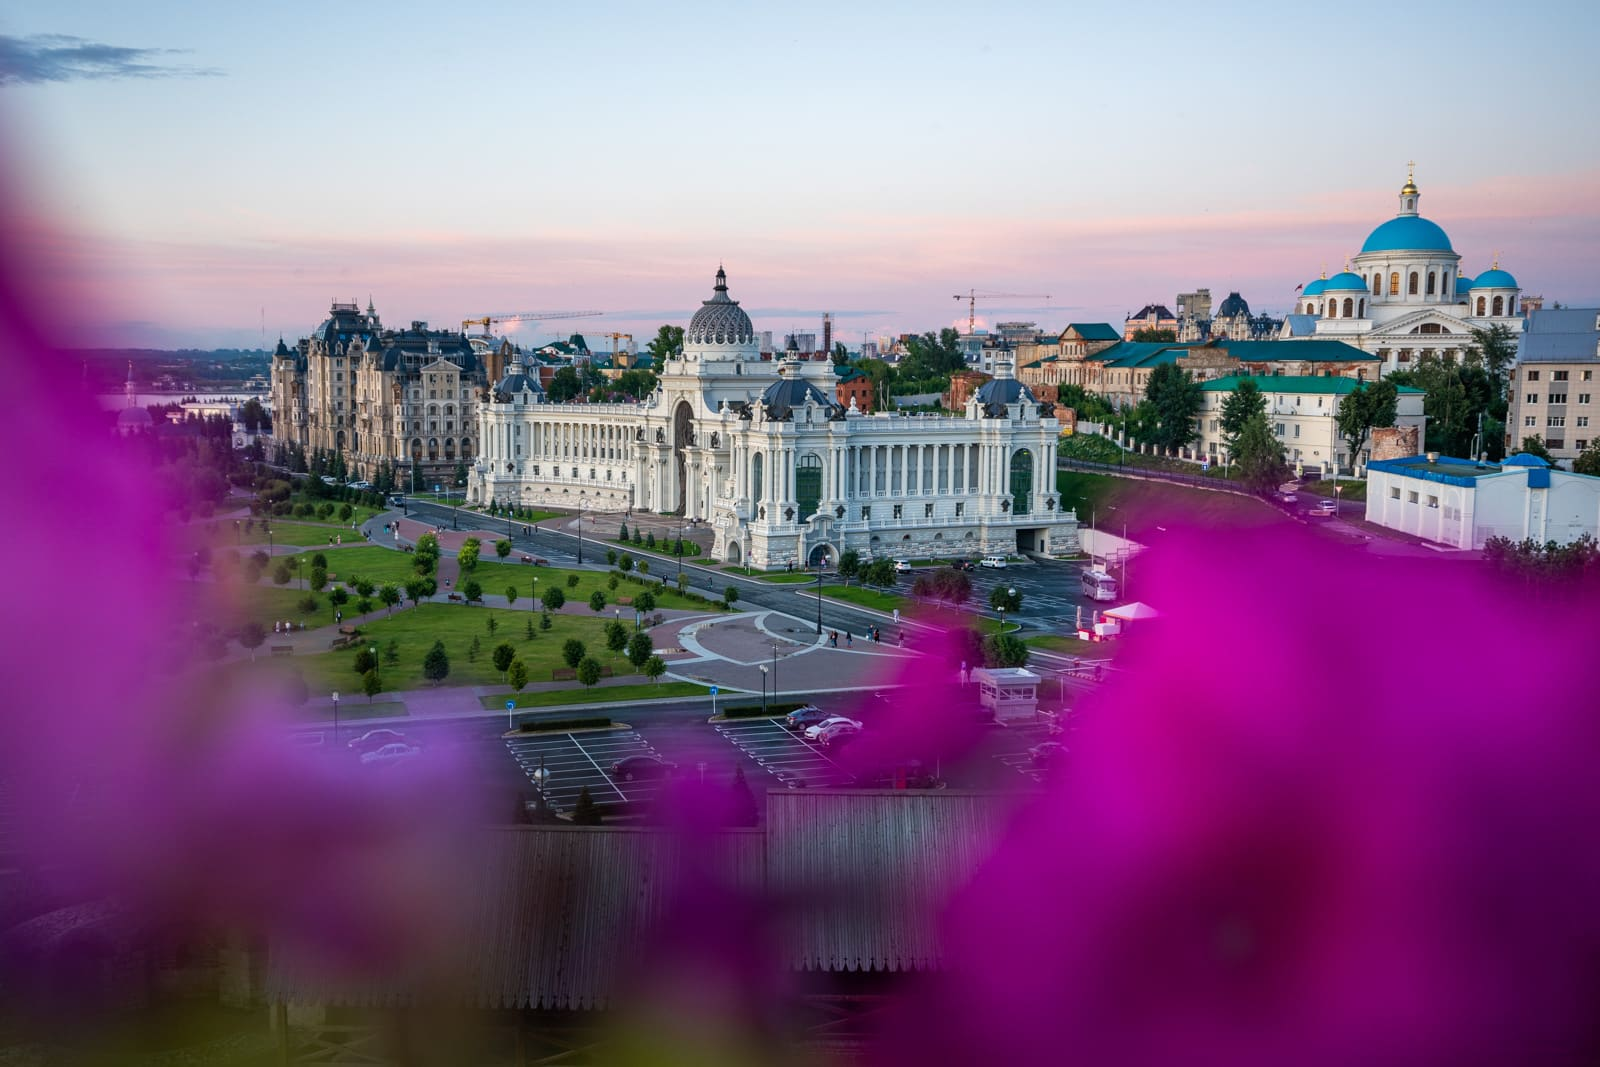 Sunset over the Ministry of Agriculture building in Kazan, Tatarstan, Russia